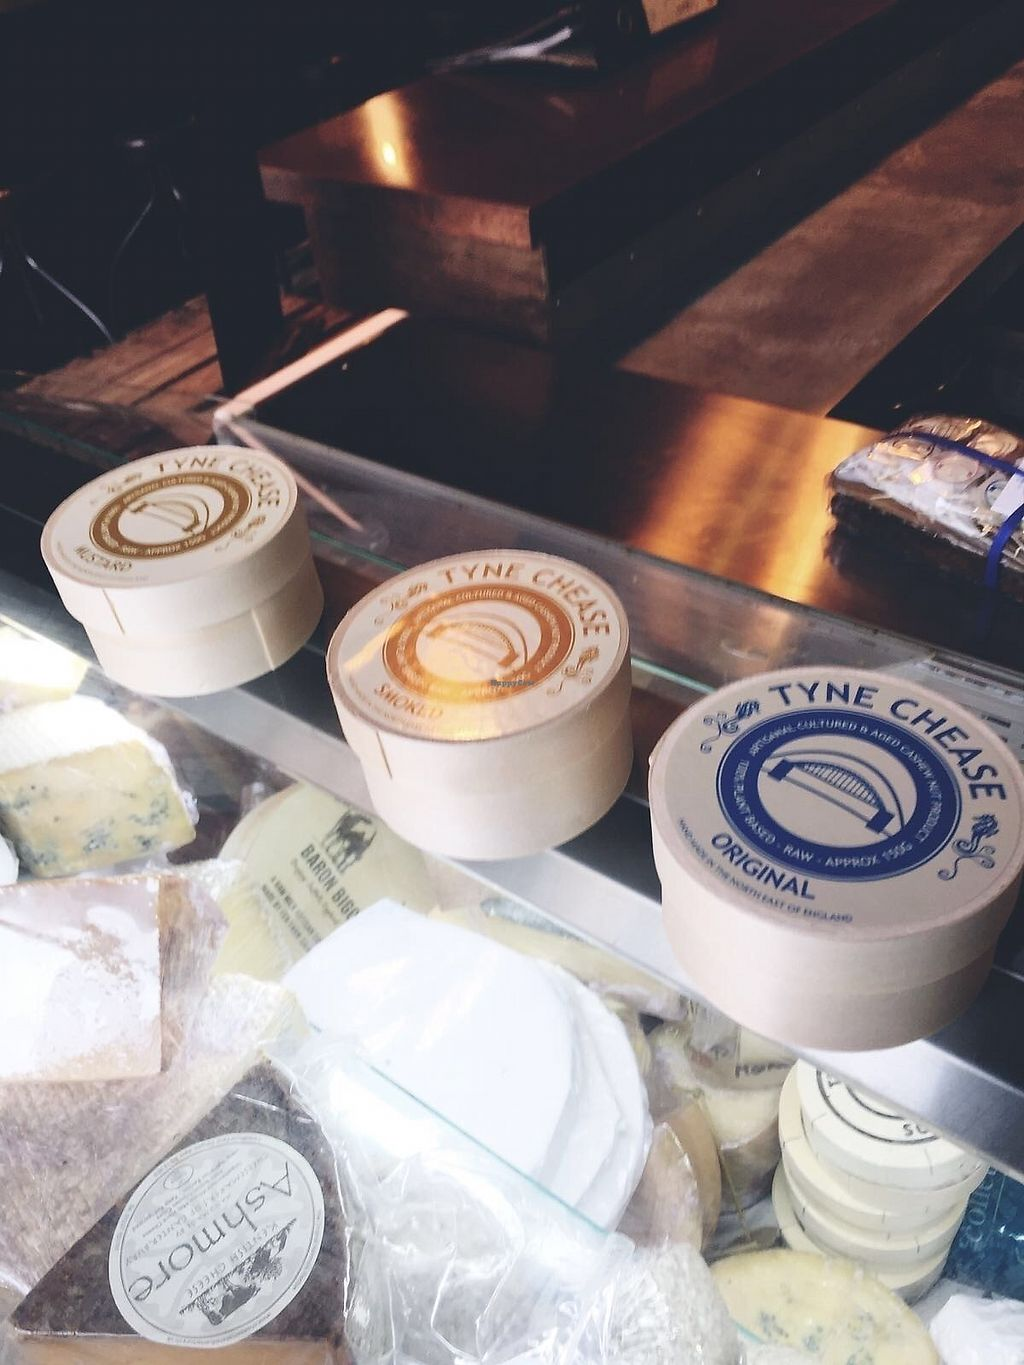 """Photo of The Cheese Room   by <a href=""""/members/profile/TARAMCDONALD"""">TARAMCDONALD</a> <br/>Collection of vegan artisan cheeses to buy in store by Tyne Chease <br/> August 24, 2017  - <a href='/contact/abuse/image/97648/296737'>Report</a>"""